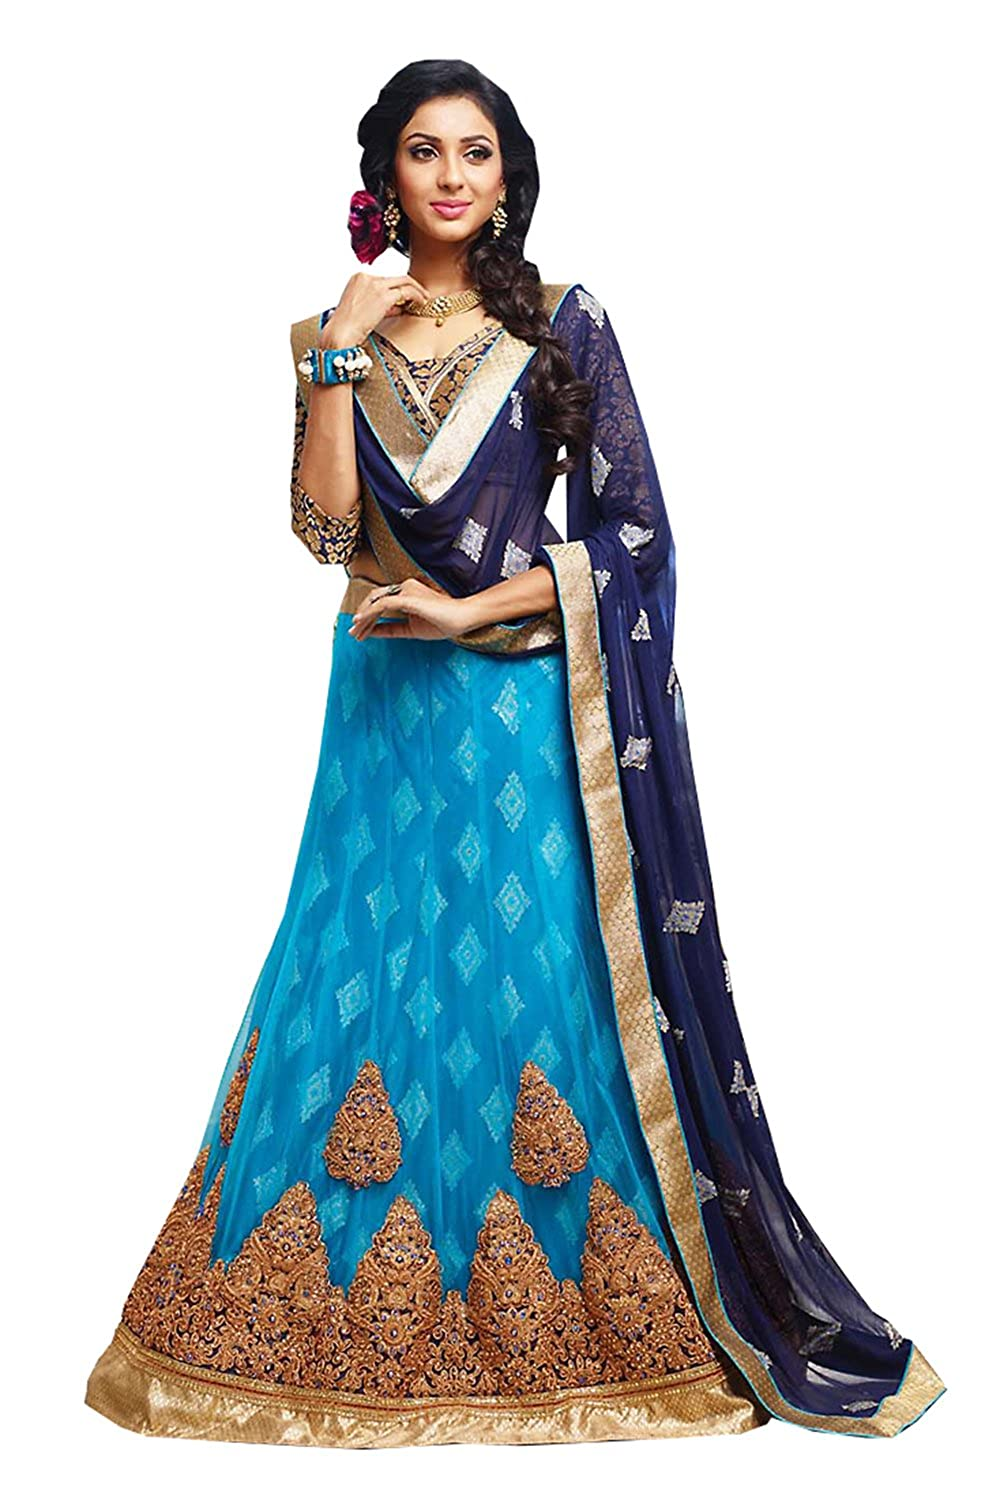 Fashions Trendz Womens Sky Blue Color Pretty A Line Lehenga Style With Lace Work Dupa